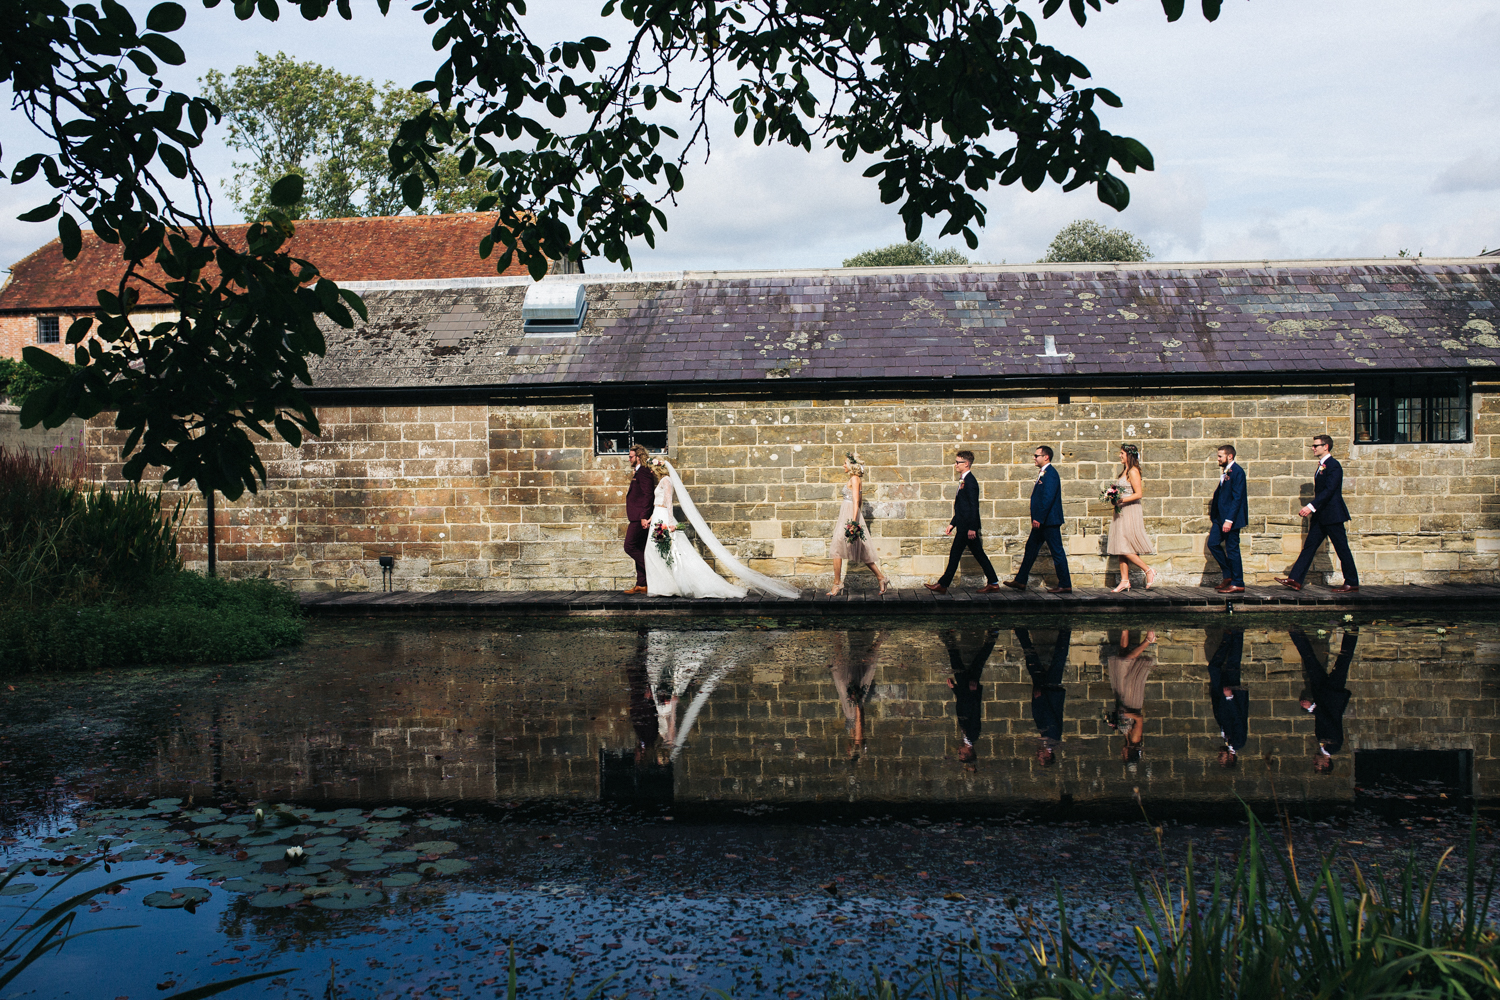 a bride, groom and their bridal party walk along a pond, their reflection shows in the water